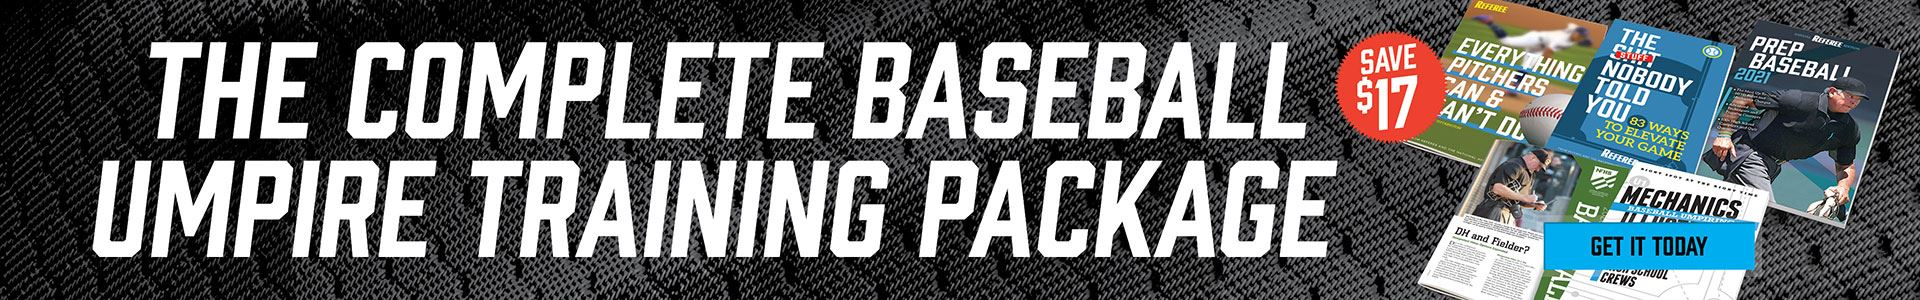 2021 Complete Baseball Training Package